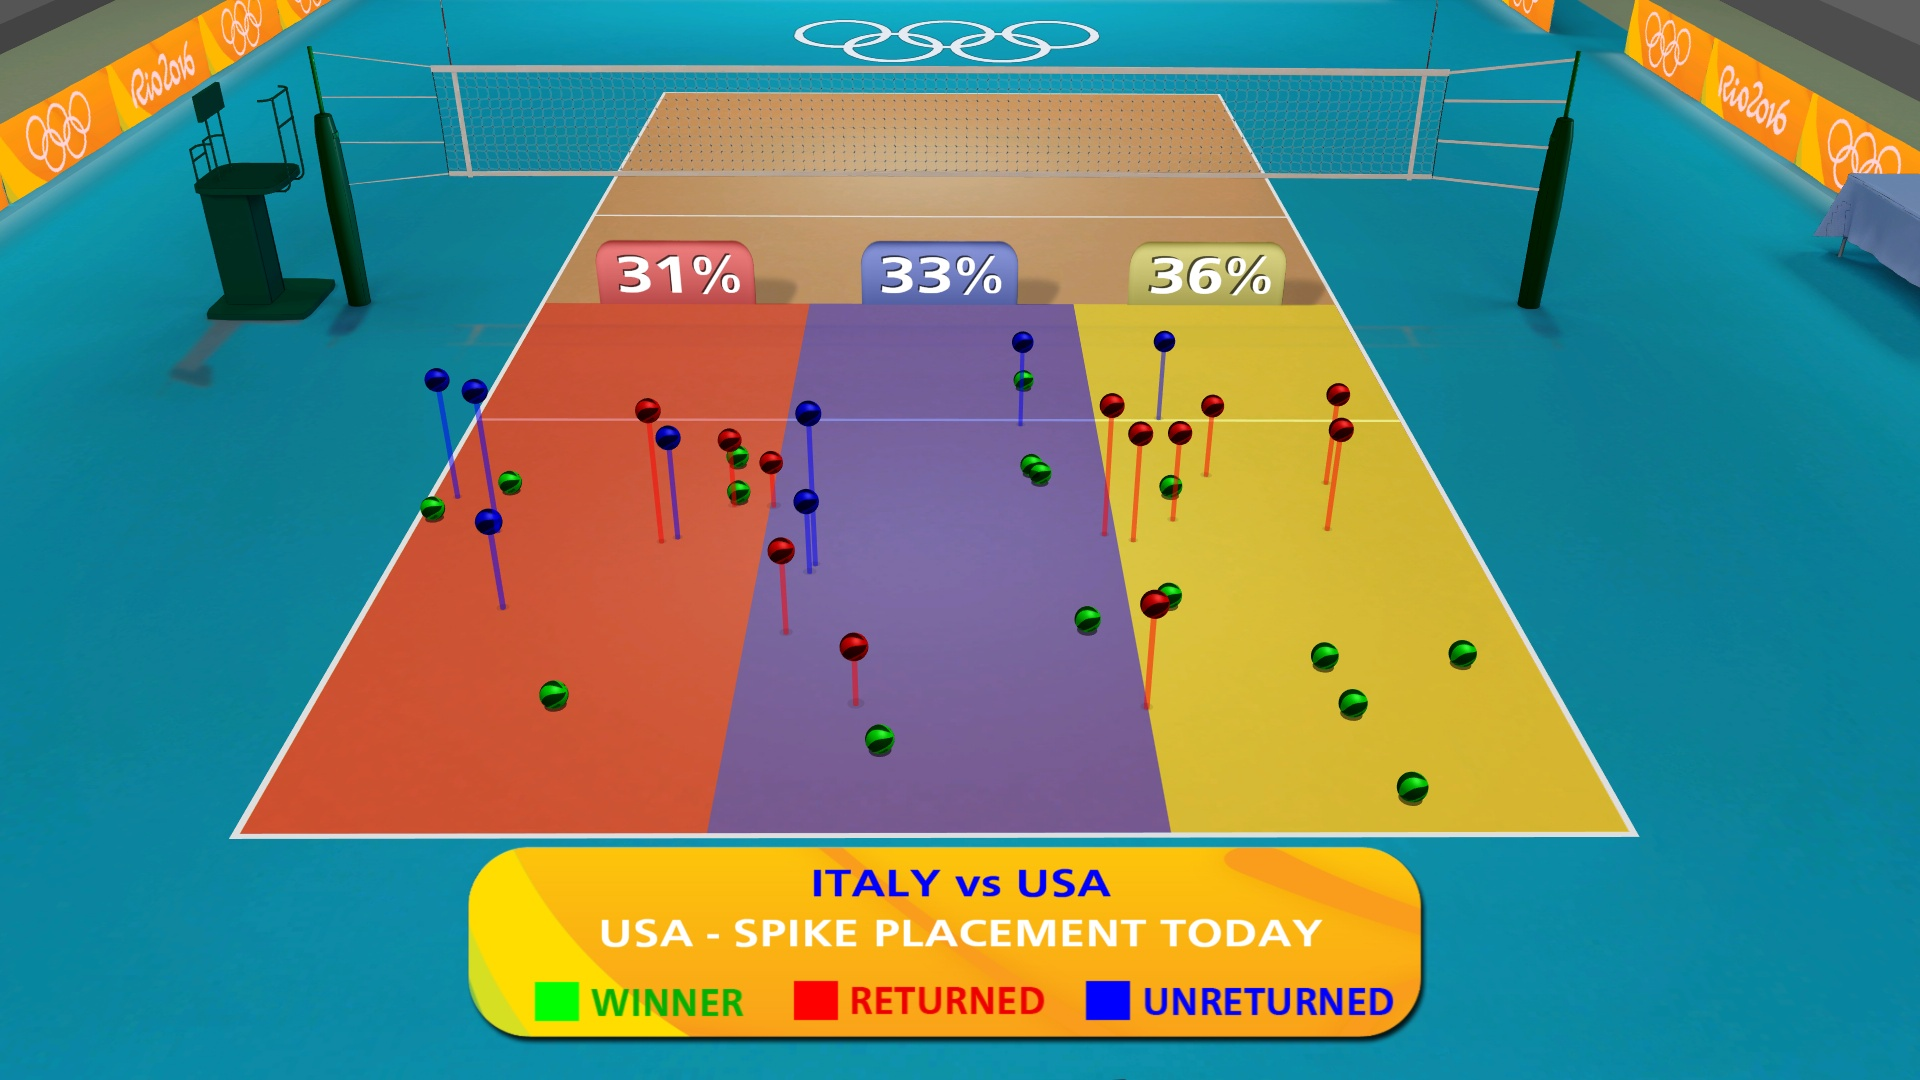 http://www.fivb.org/Vis2009/Images/GetImage.asmx?No=201653346&maxSize=960